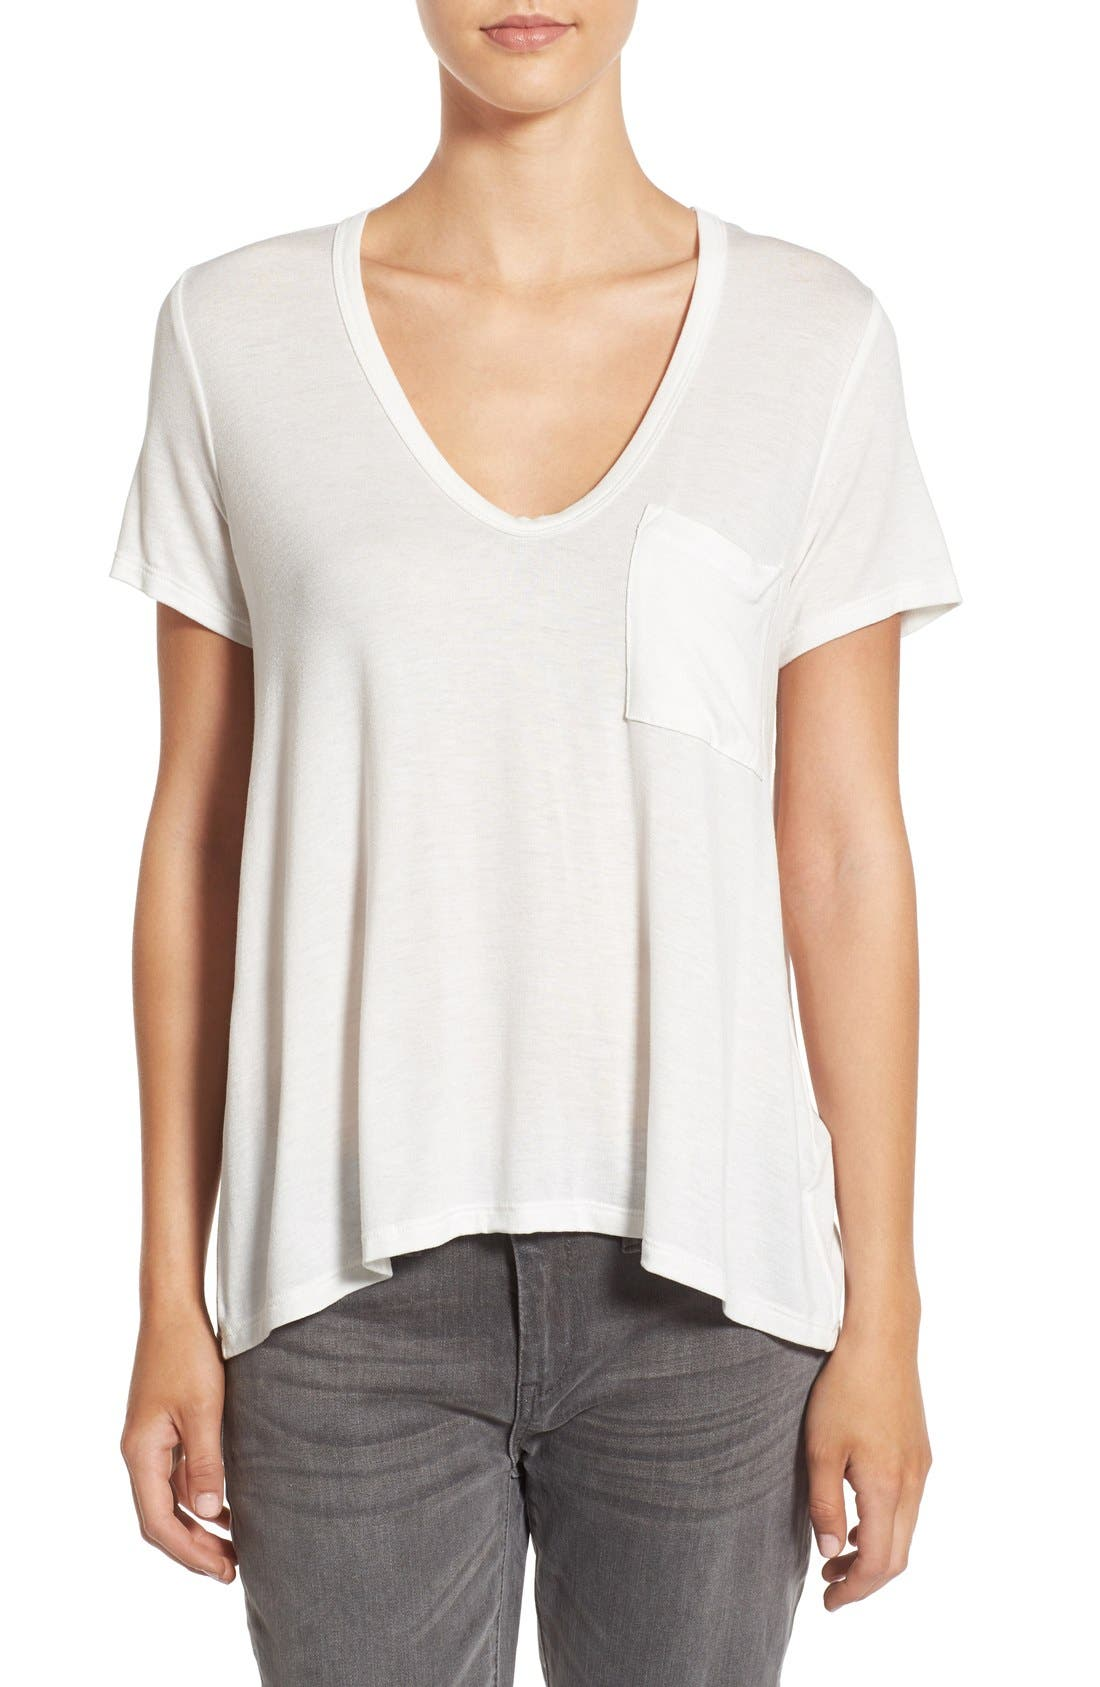 Alternate Image 1 Selected - Lush Deep-V Neck Tee